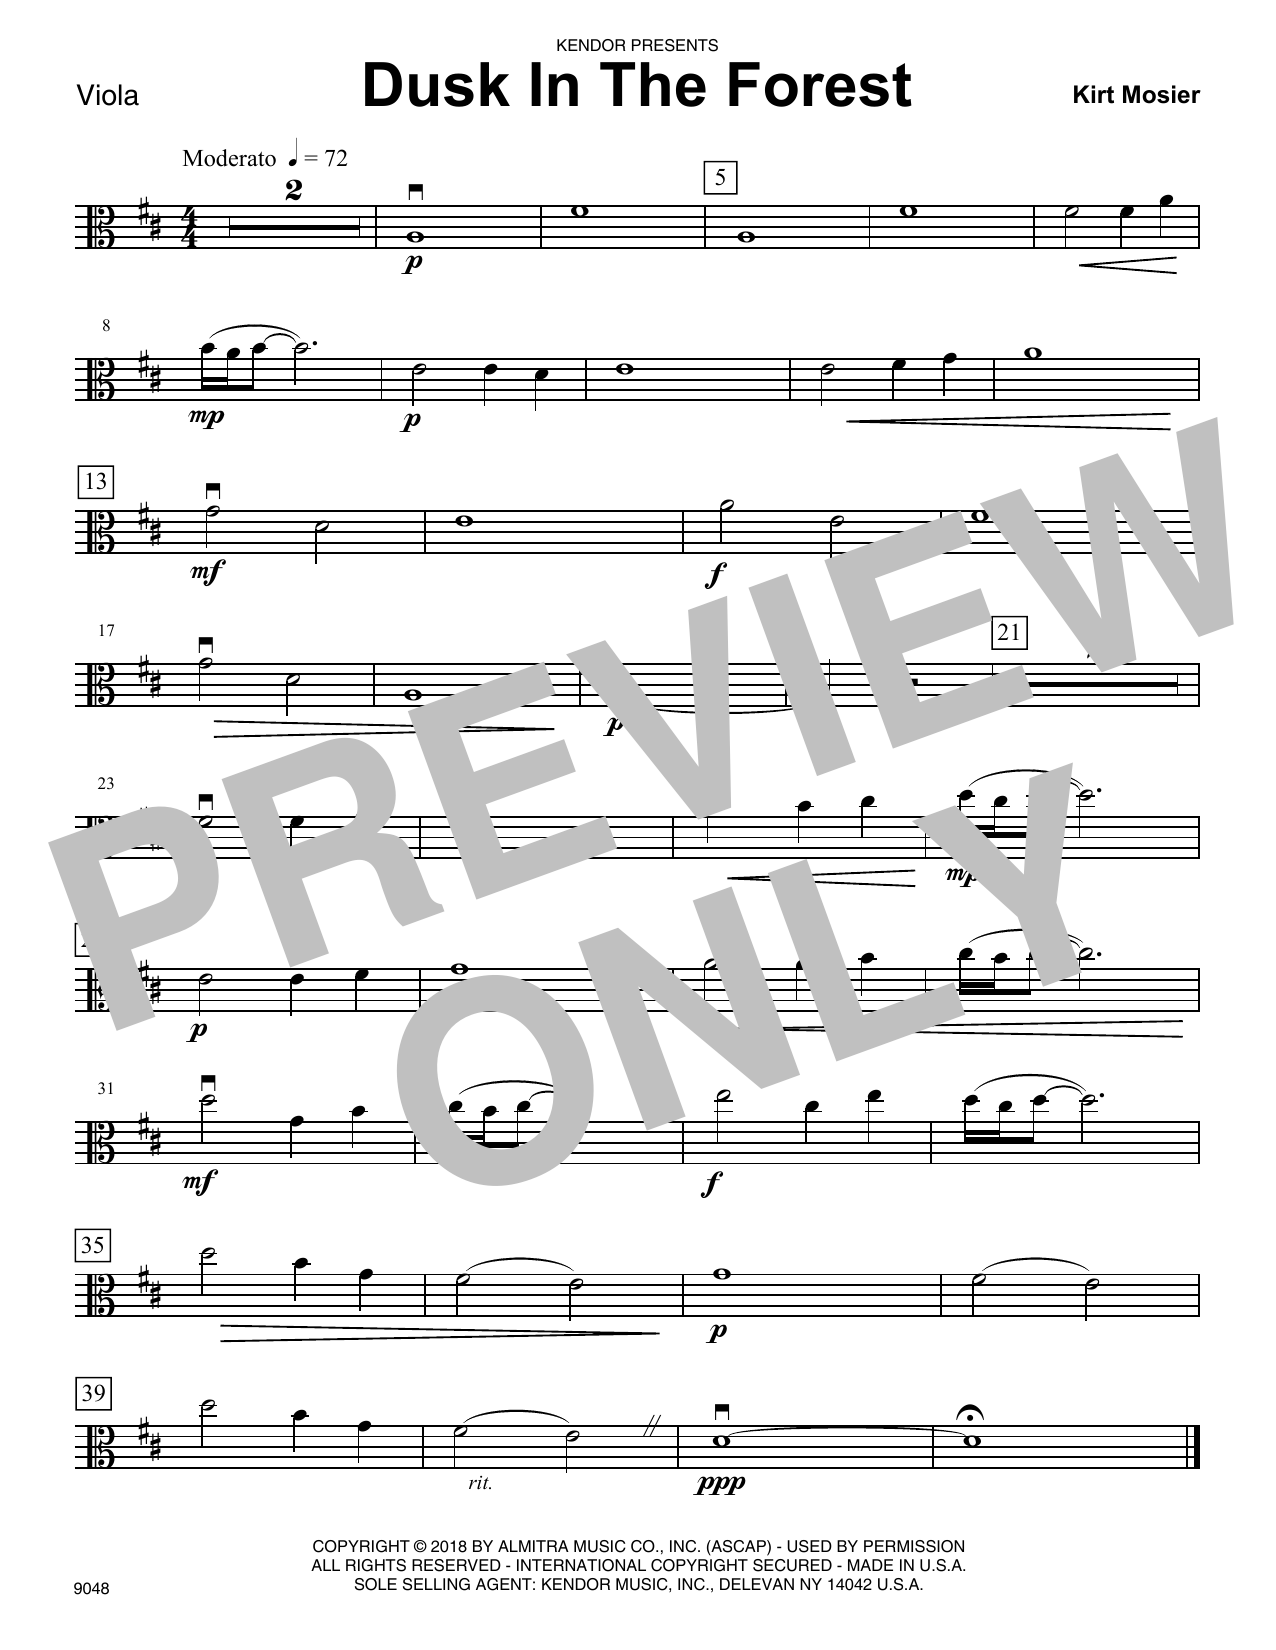 Kirt Mosier Dusk In The Forest - Viola sheet music notes and chords. Download Printable PDF.